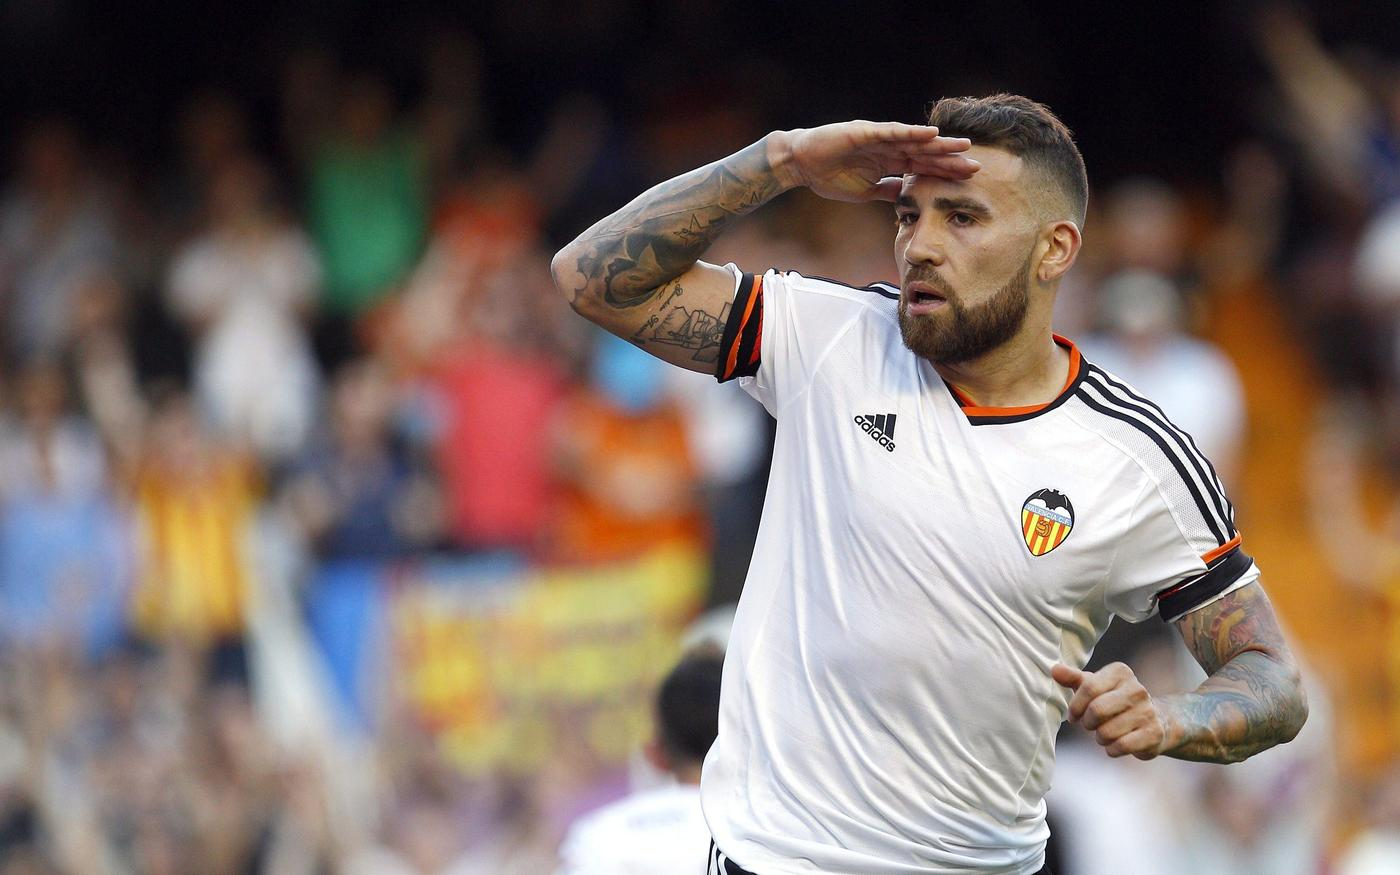 Nicolas Otamendi 'to force through transfer to Manchester United despite not being Louis van Gaal's first choice'